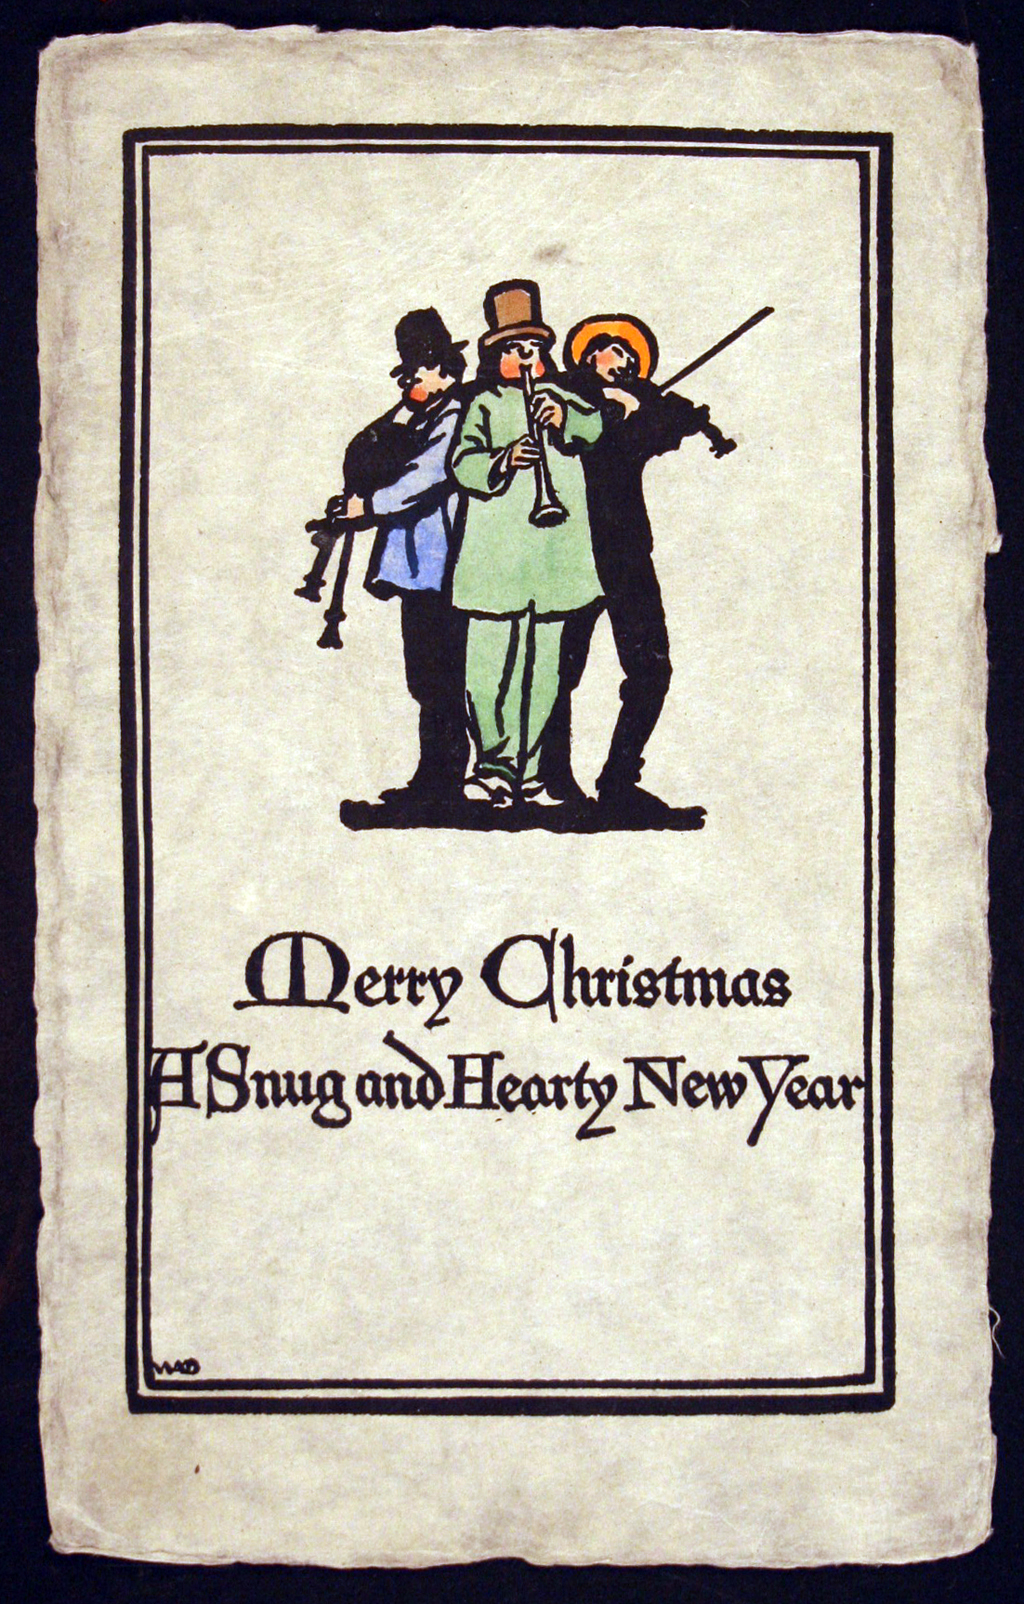 Christmas card for Willis A. Boughton (1915). Design, lettering and illustration by W.A. Dwiggins.